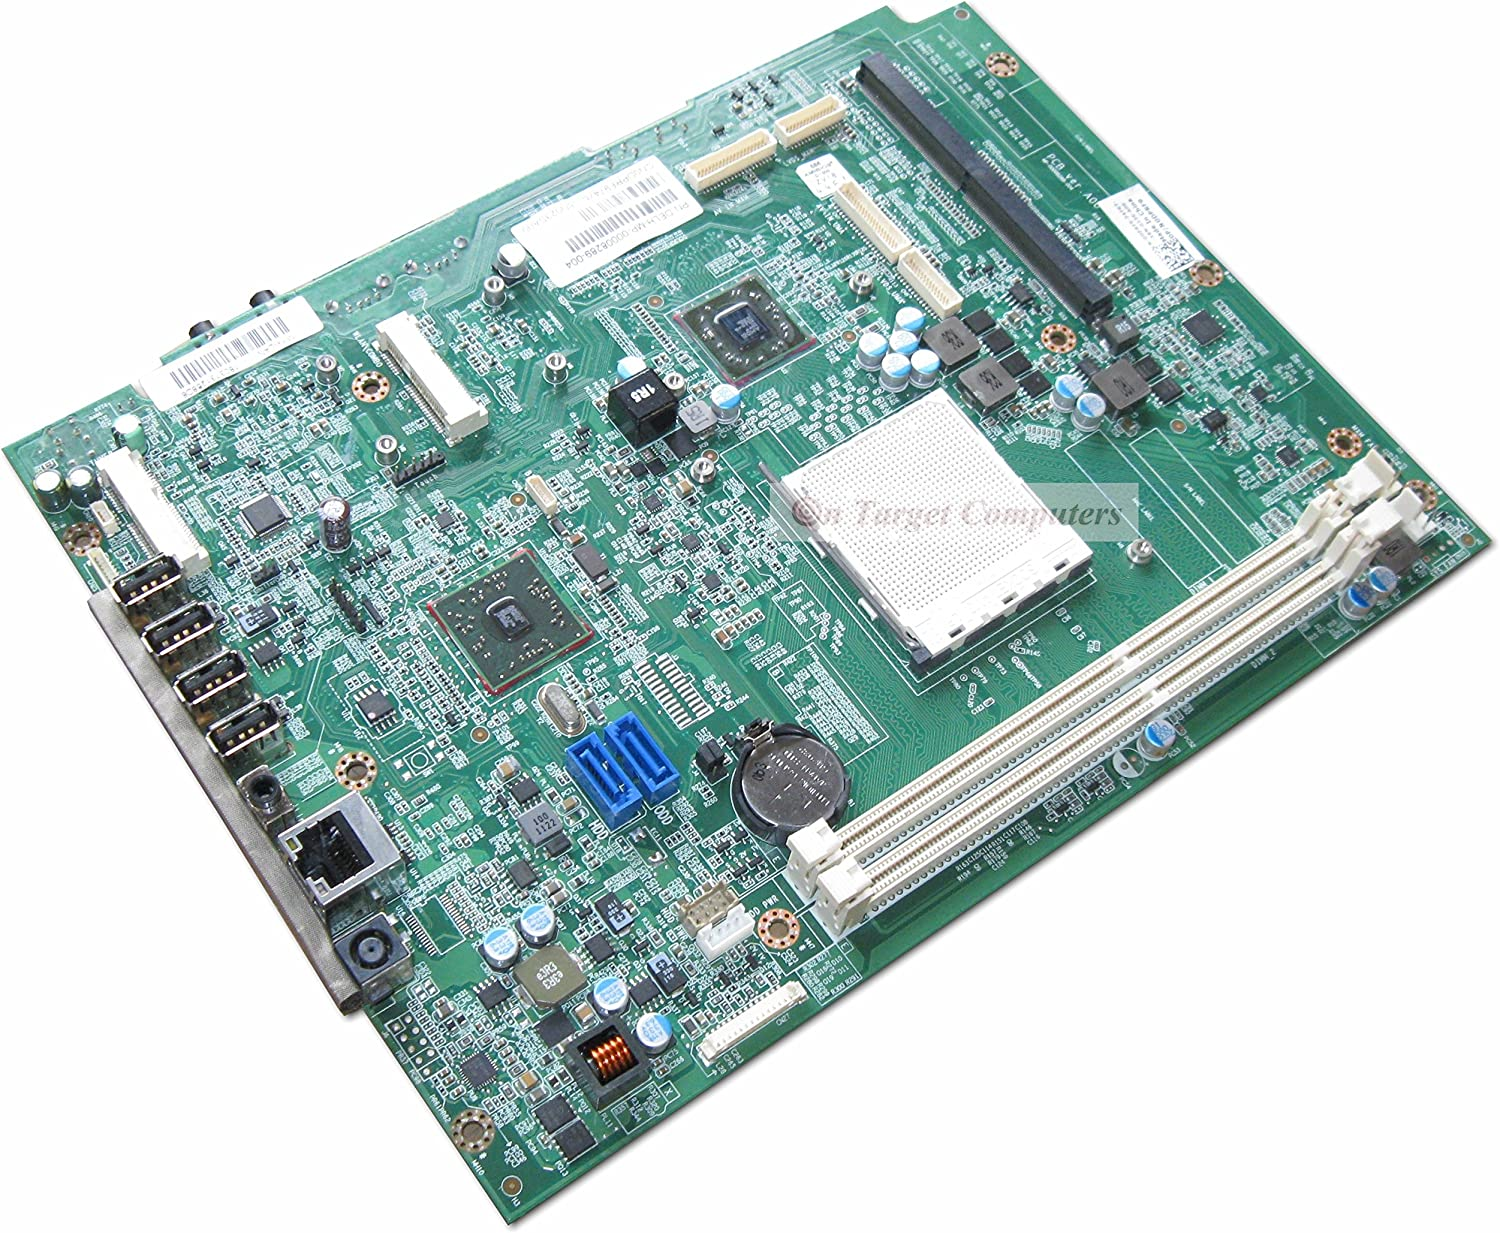 DPRF9 0YGY9 Dell Inspiron One D2305 AIO AMD Motherboard AM3